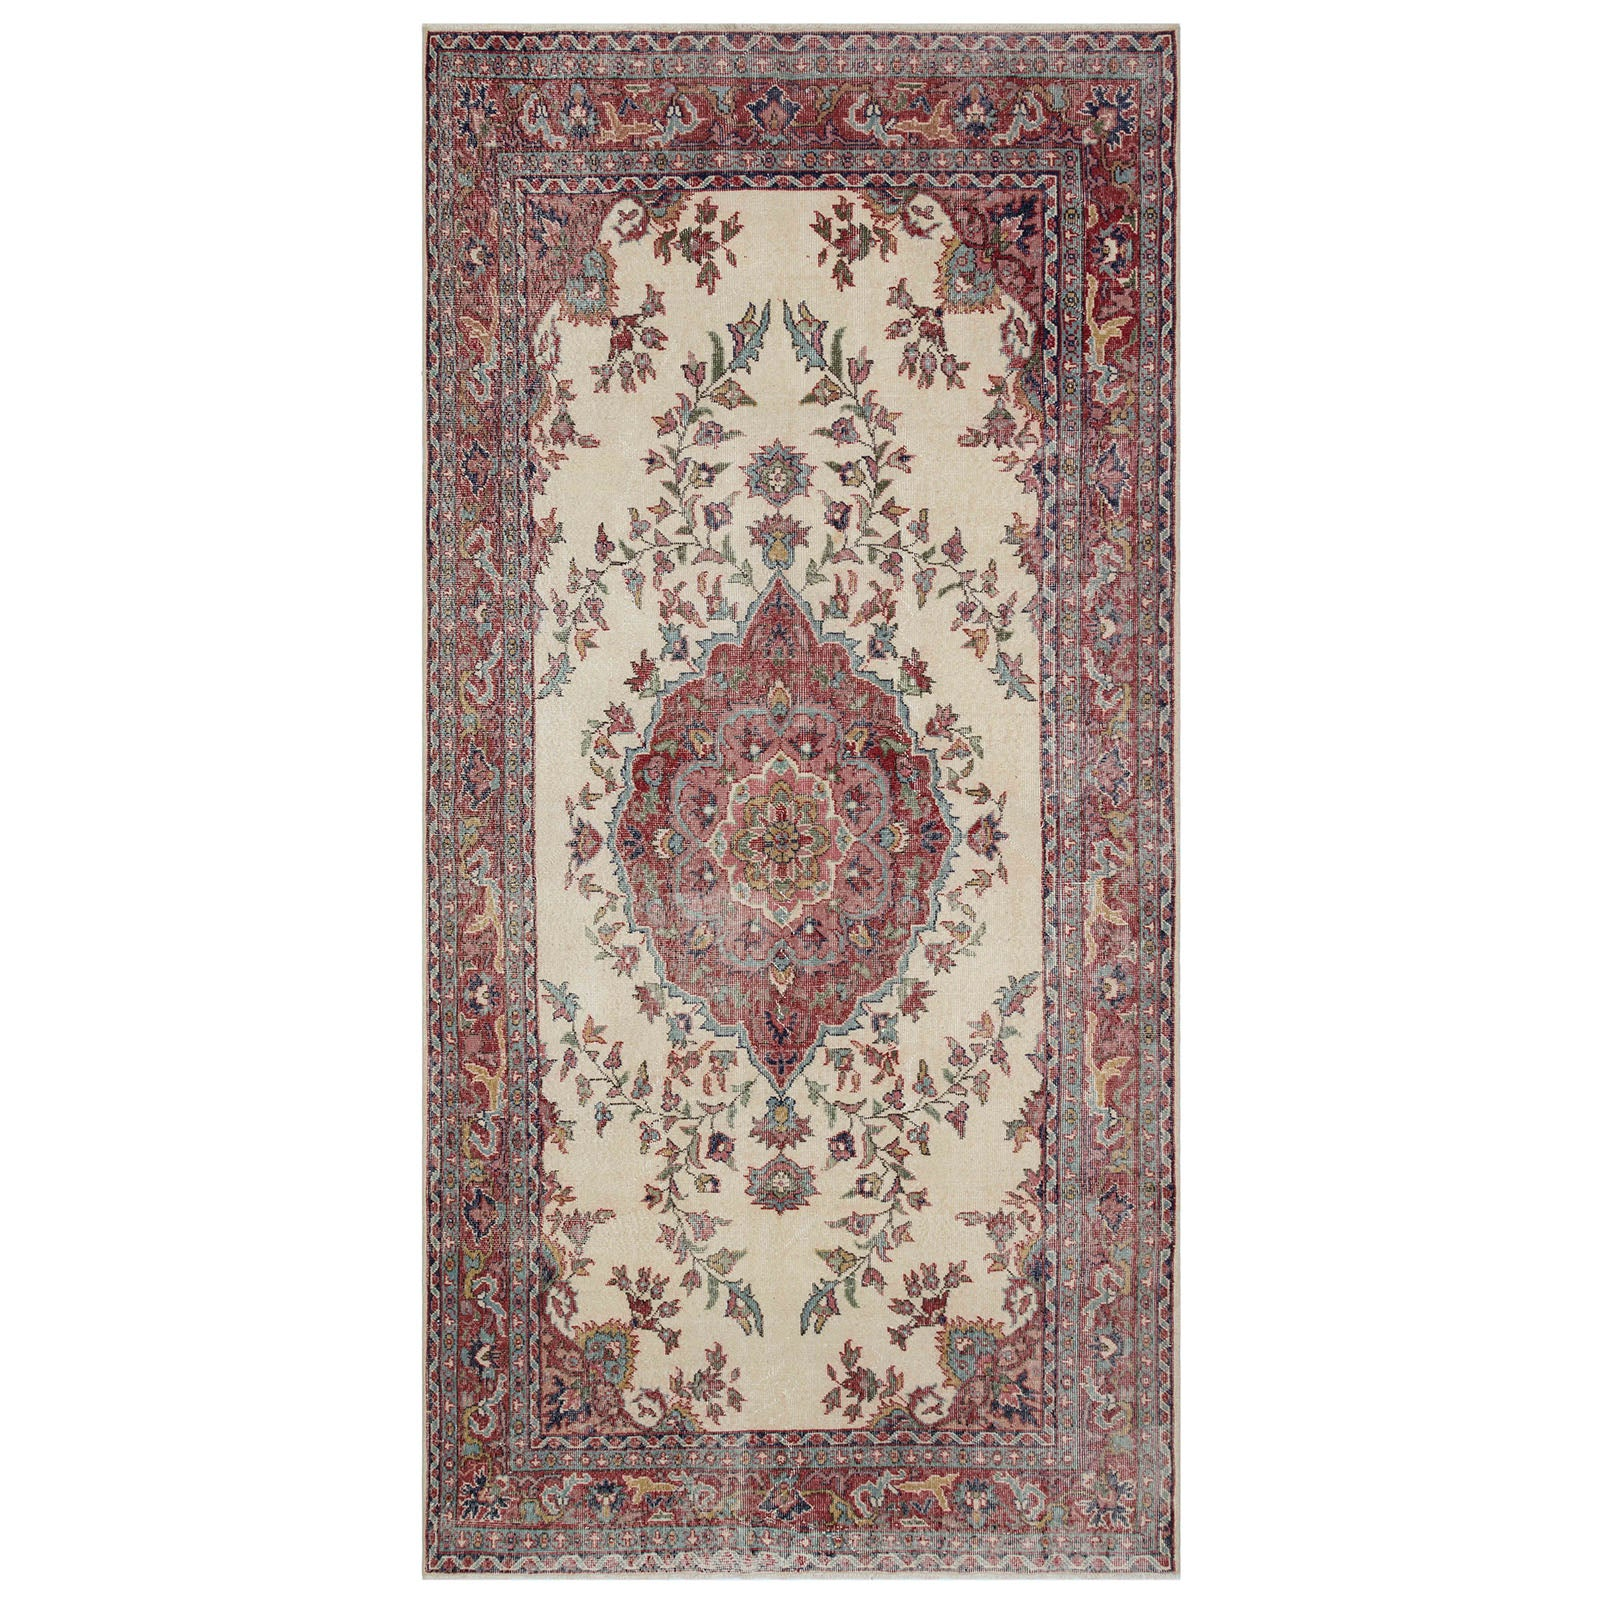 Hali 166X330 CM Bursa Handmade over dyed rug 1774